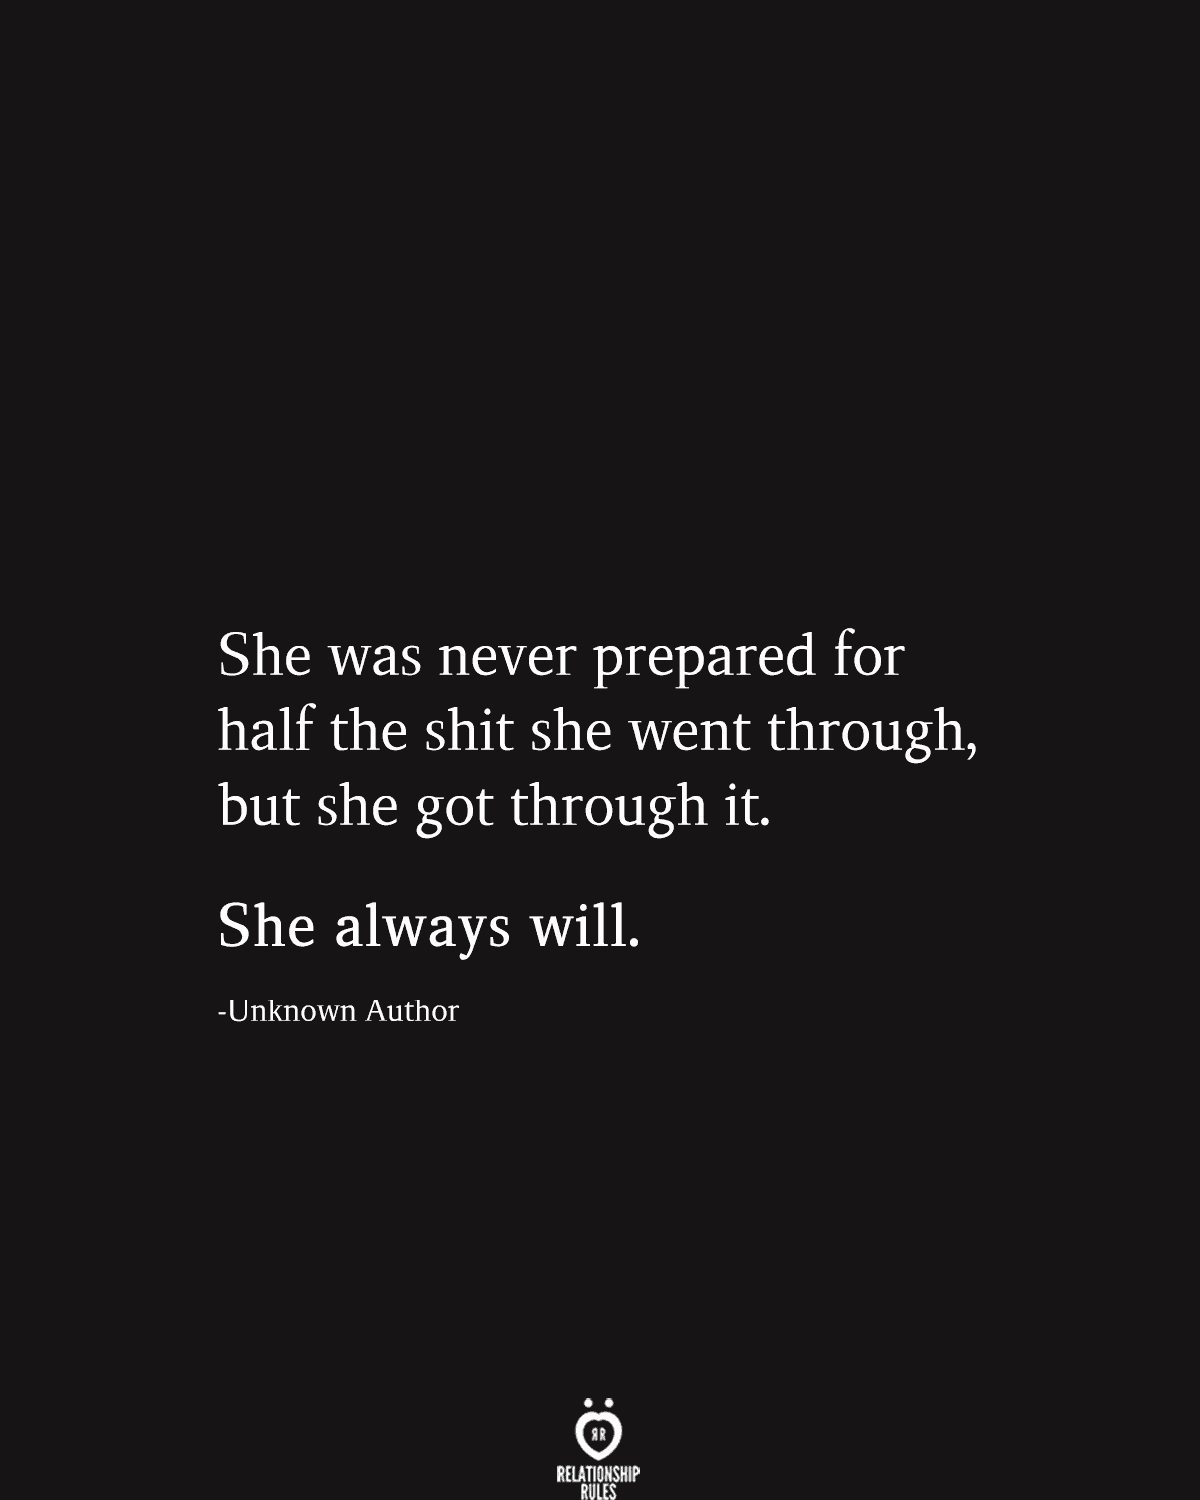 She Was Never Prepared For Half The Shit She Went Through, But She Got Through It. She Always Will